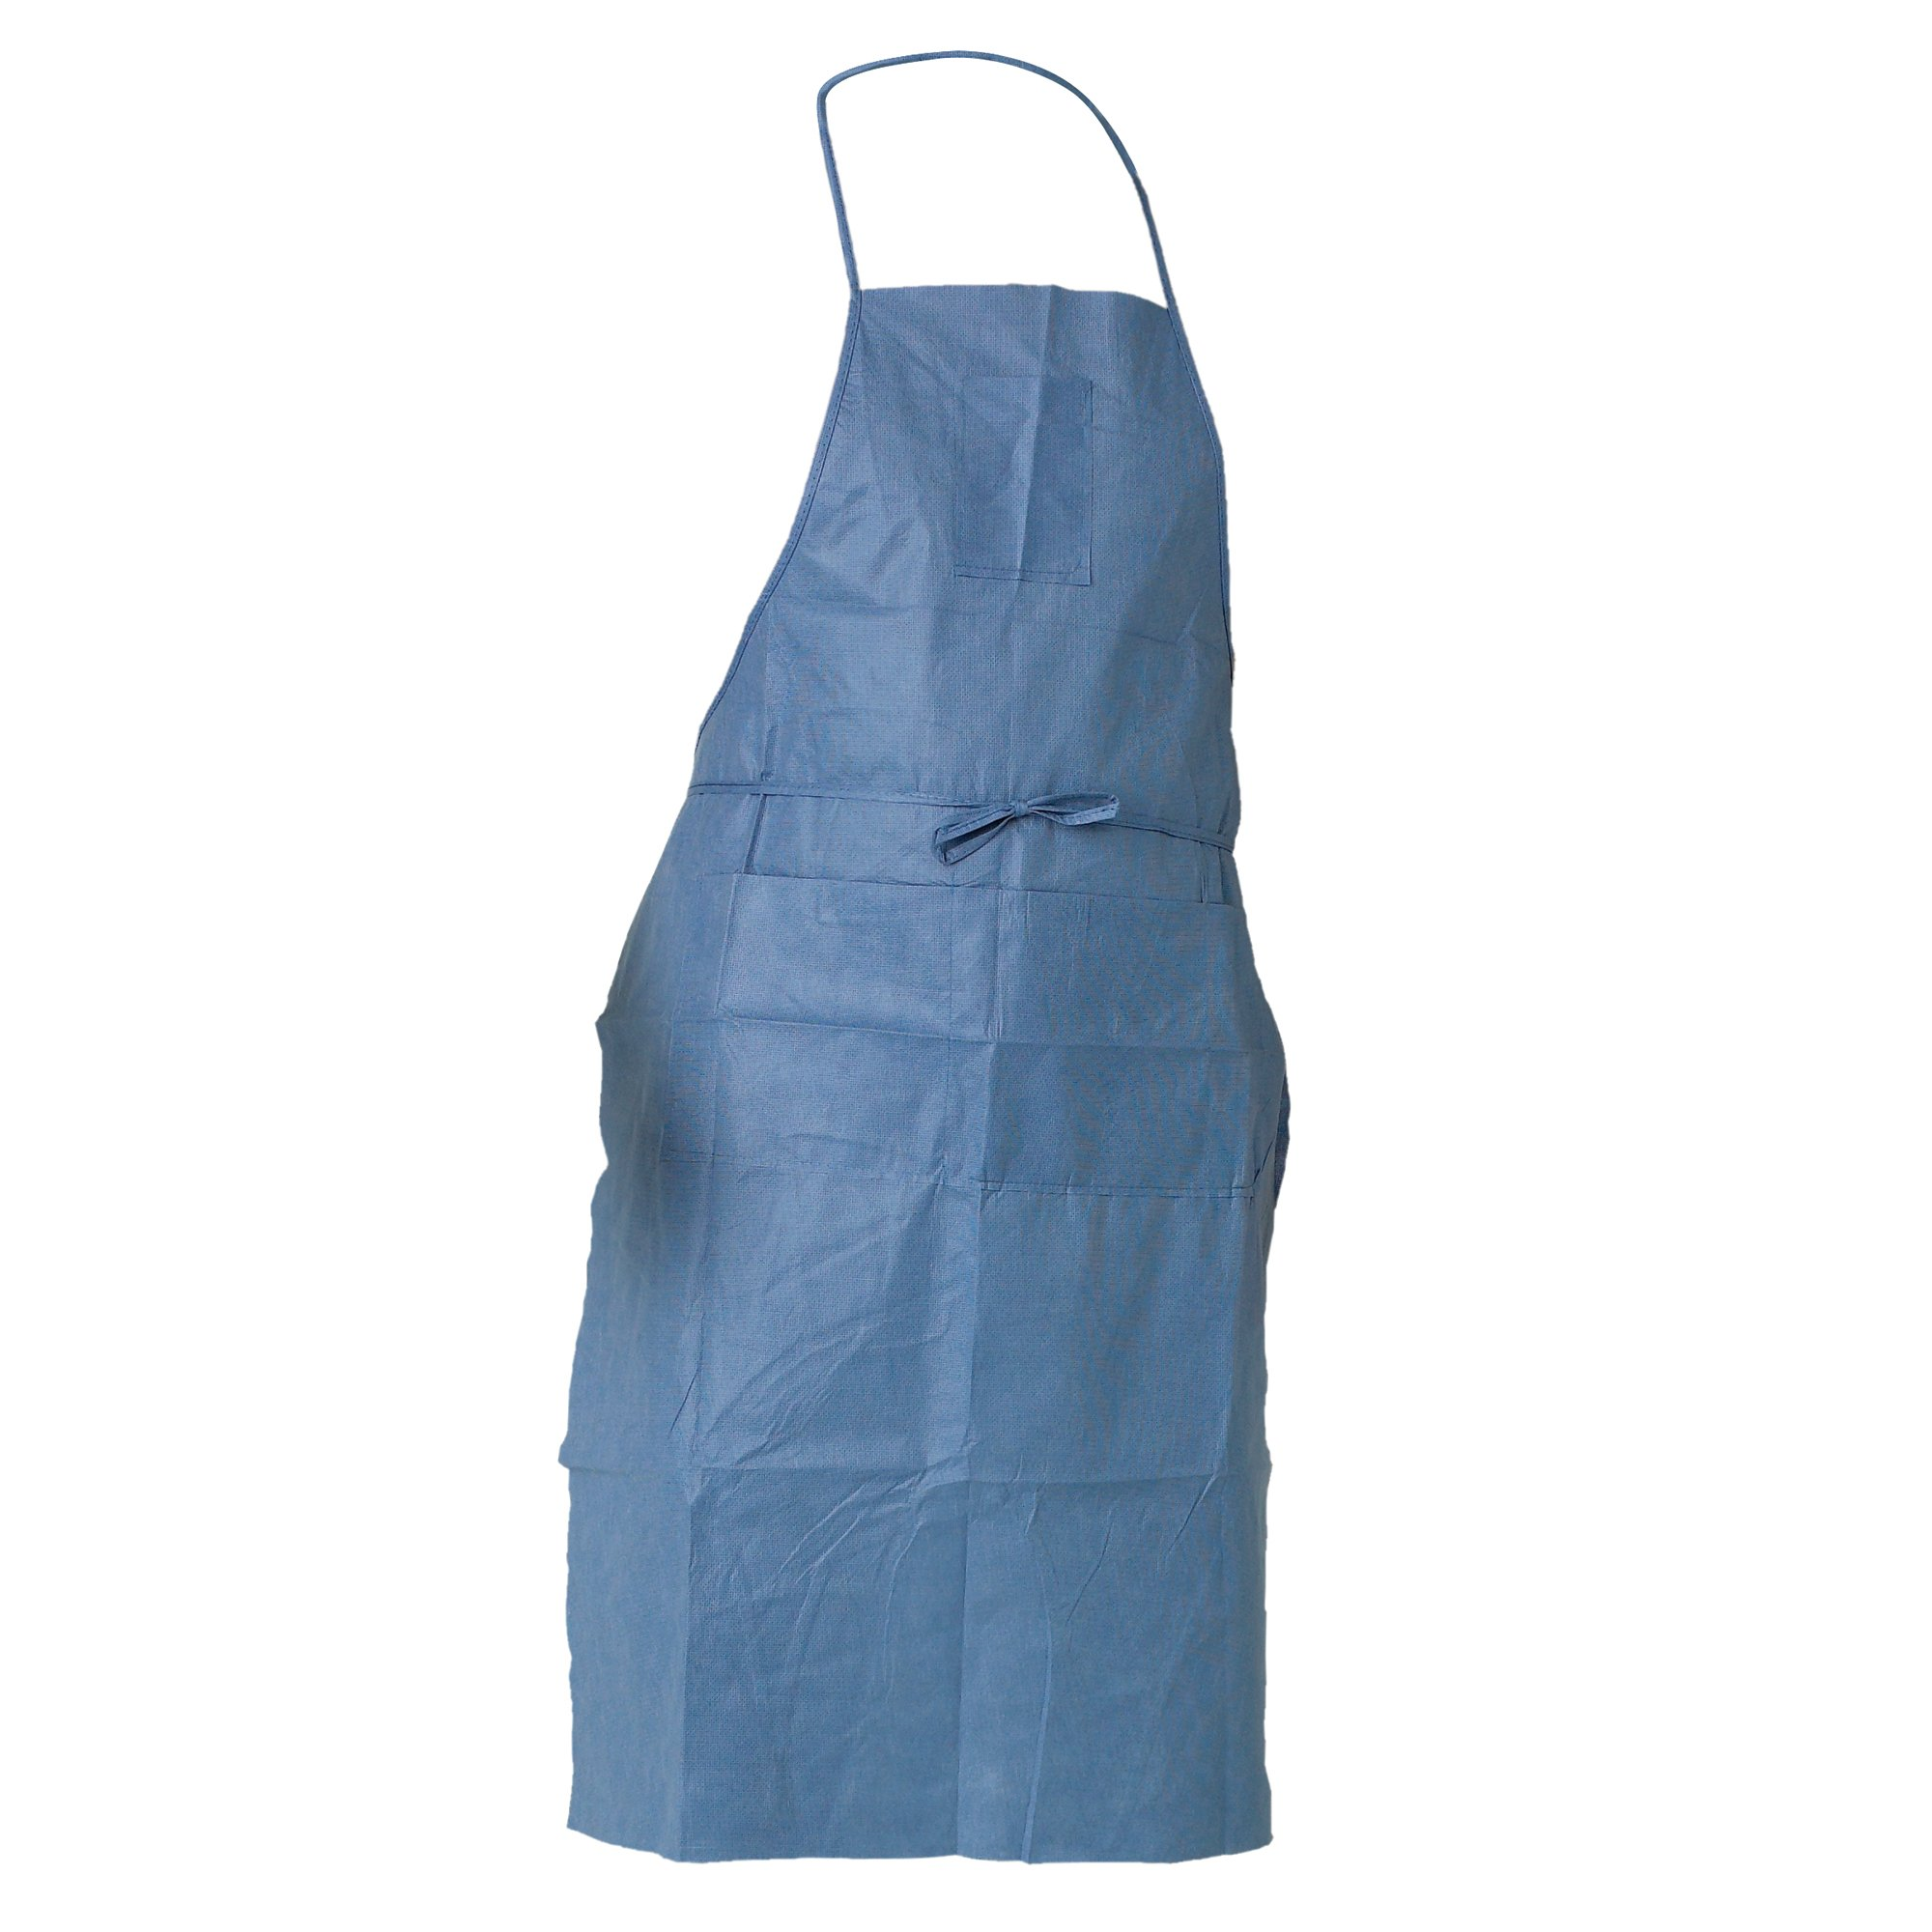 Kleenguard A20 Breathable Particle Protection Apron (36260), Universal Size (One Size), Tie Back, Blue Denim with Pockets, 100 / Case, 10 Bags of 10 Aprons